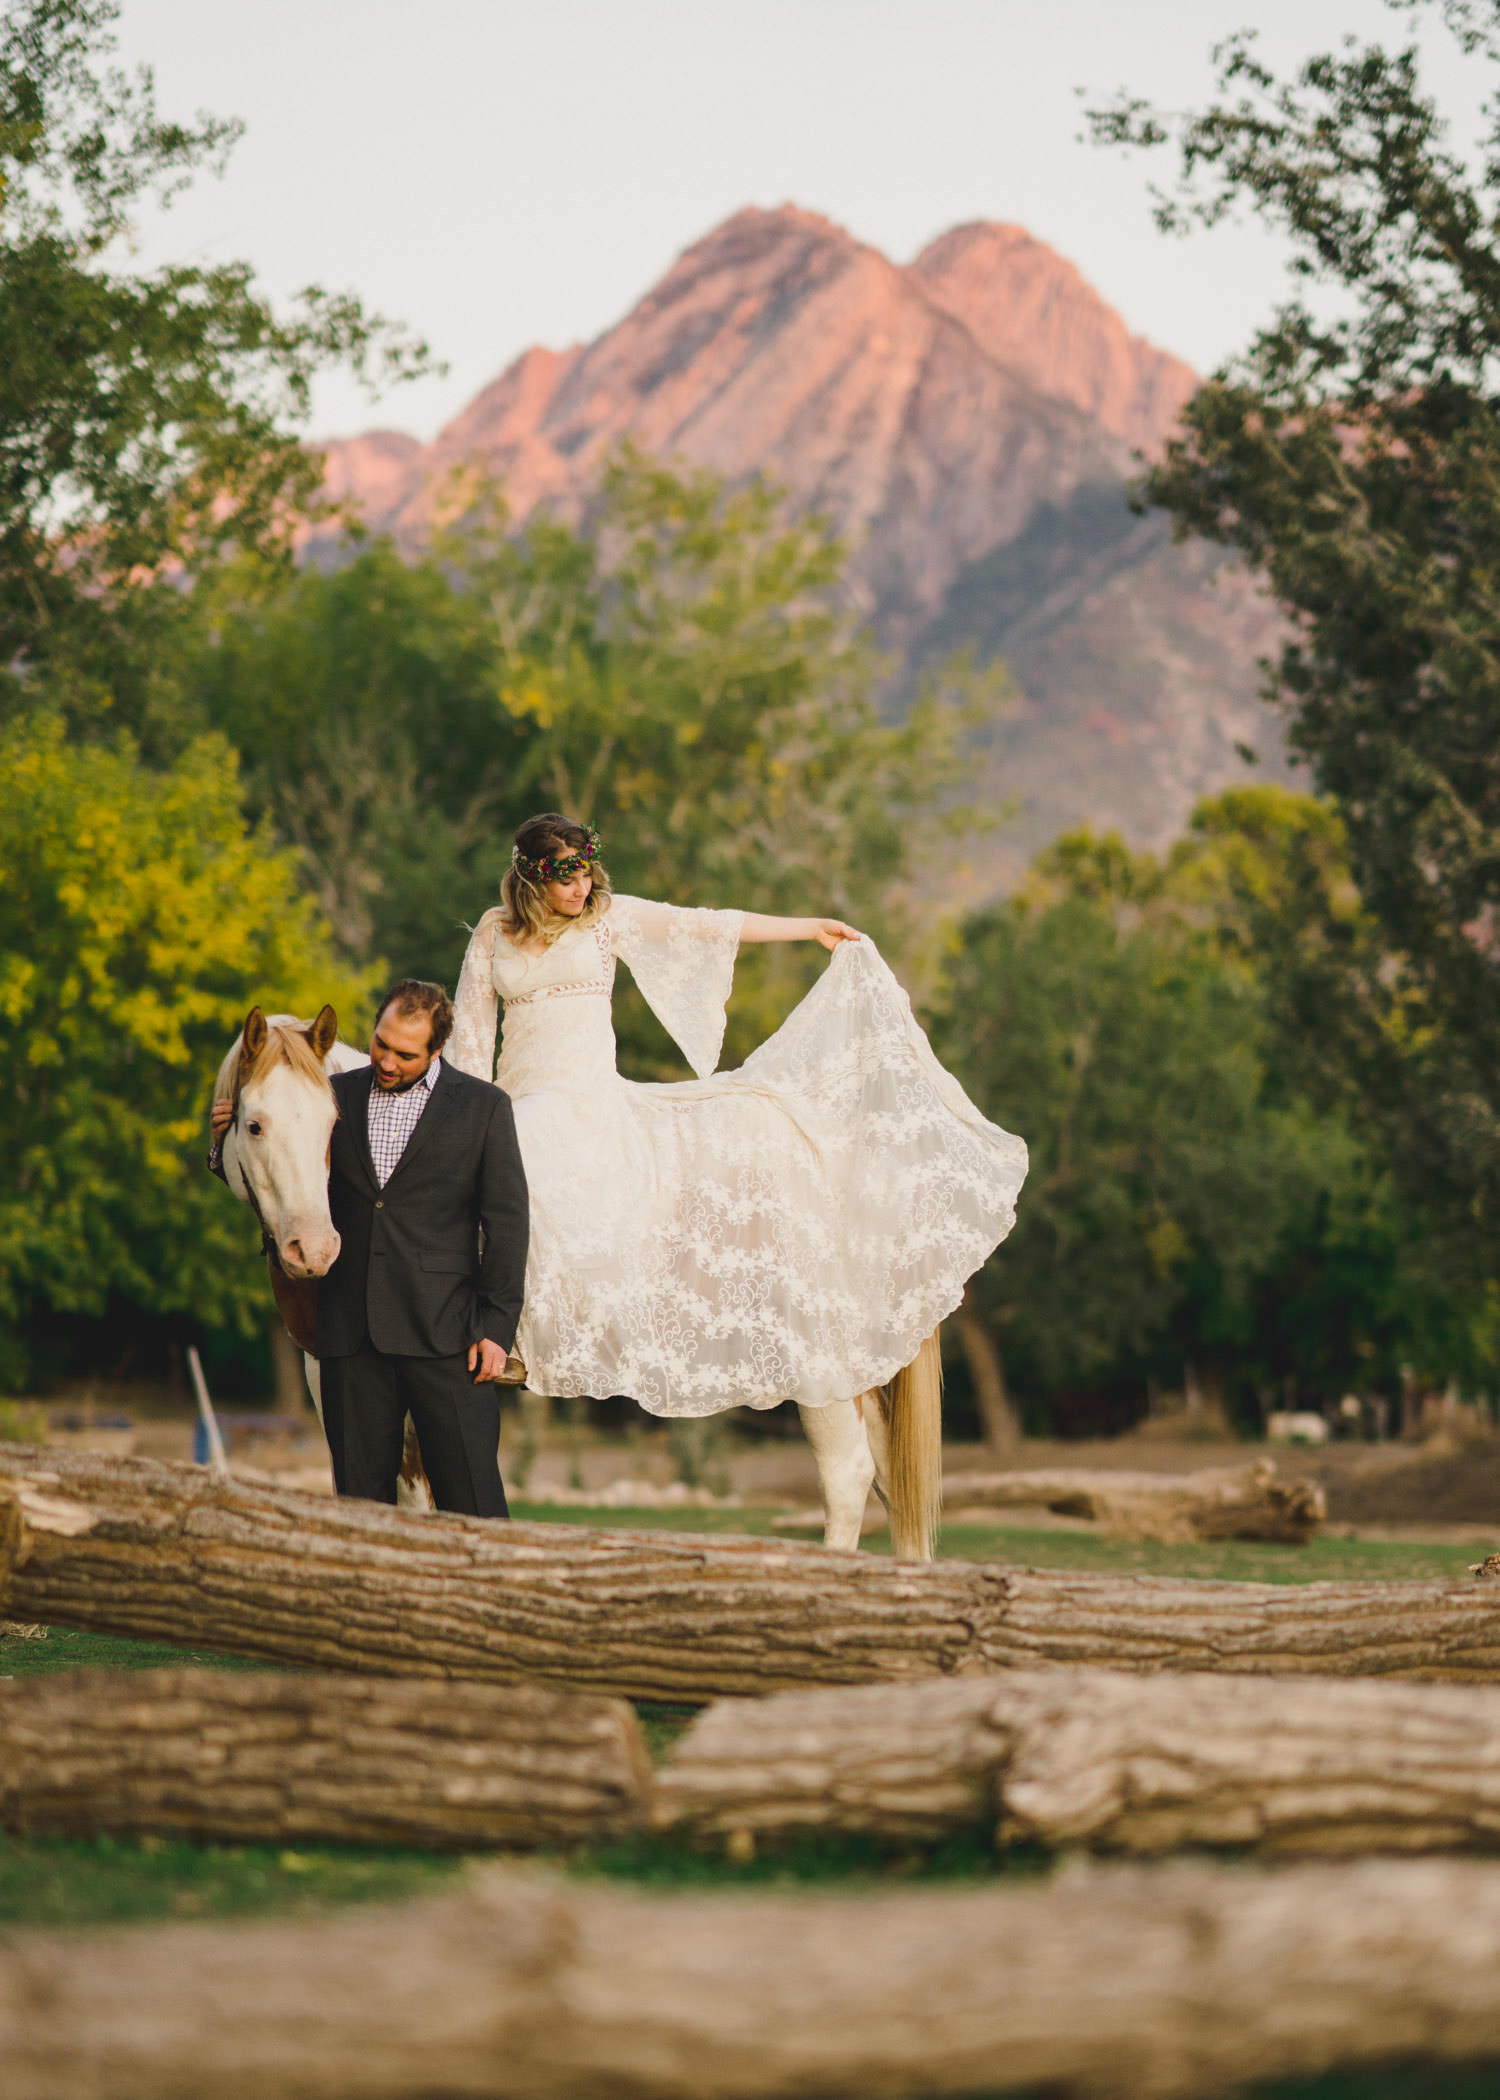 Equestrian bridal session bride admiring gown while on horse photo